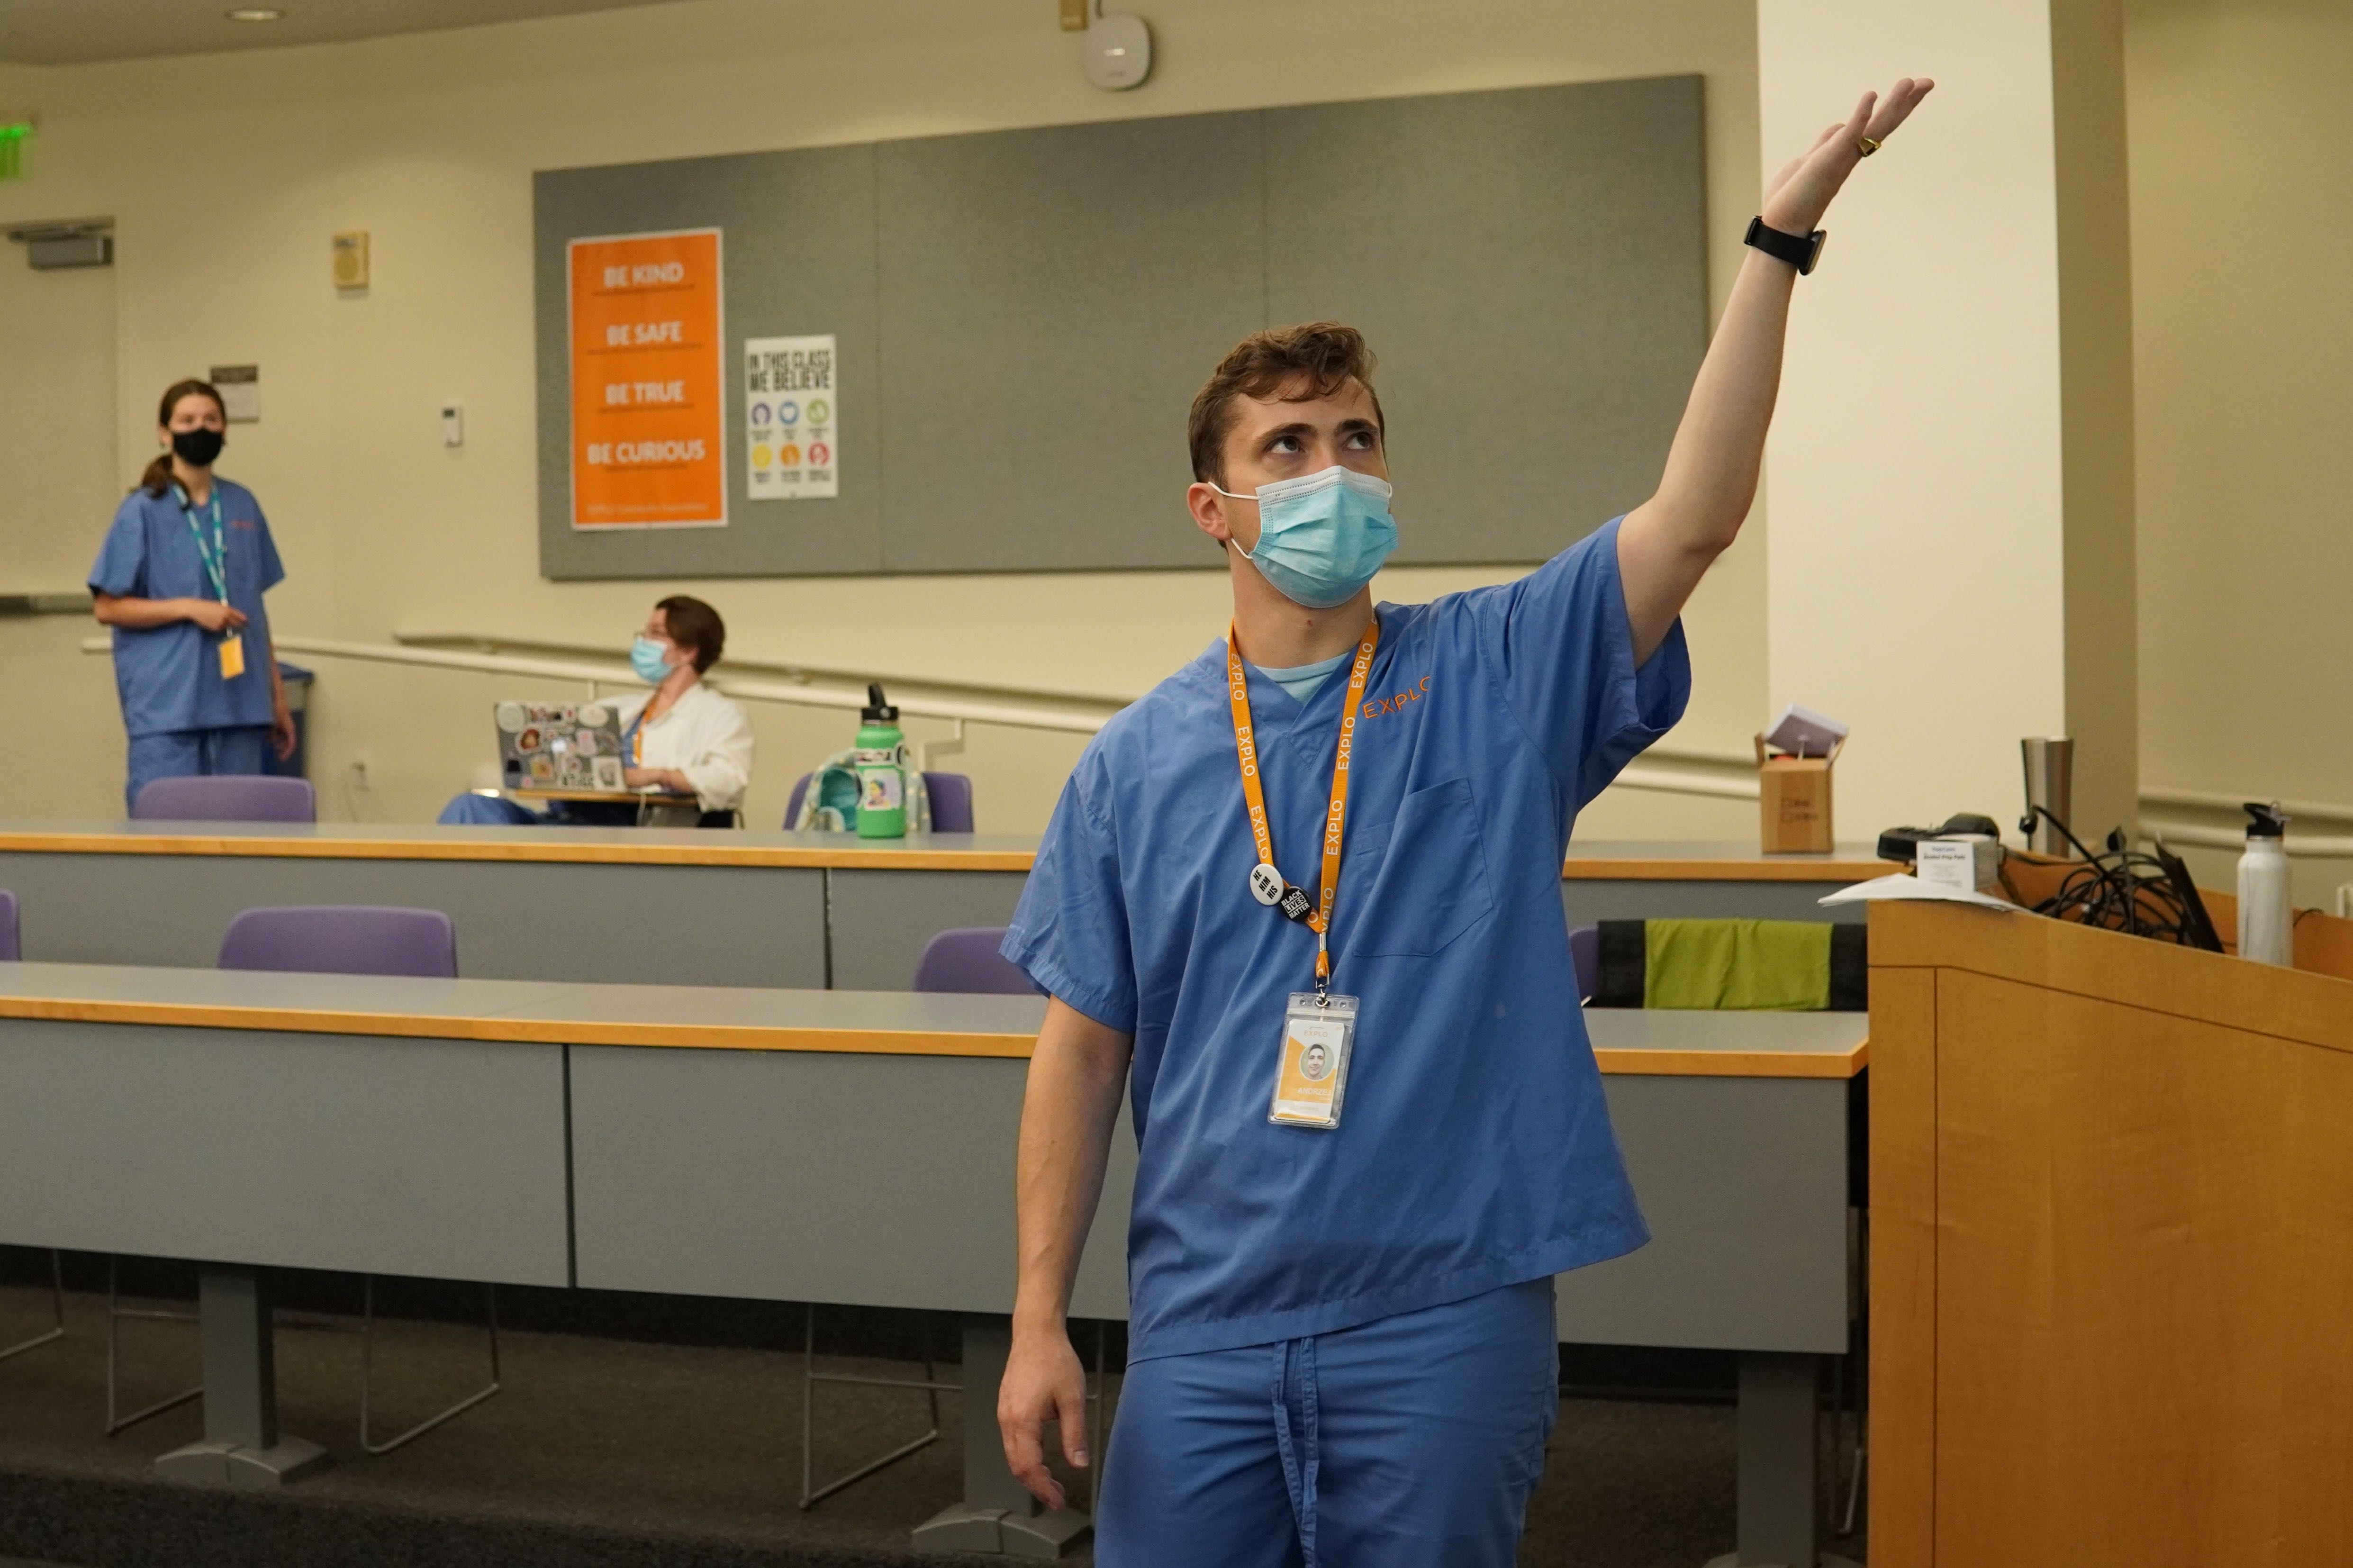 Leading Instructor Andrej gestures up toward the projection out of frame as he explains lab safety procedures.